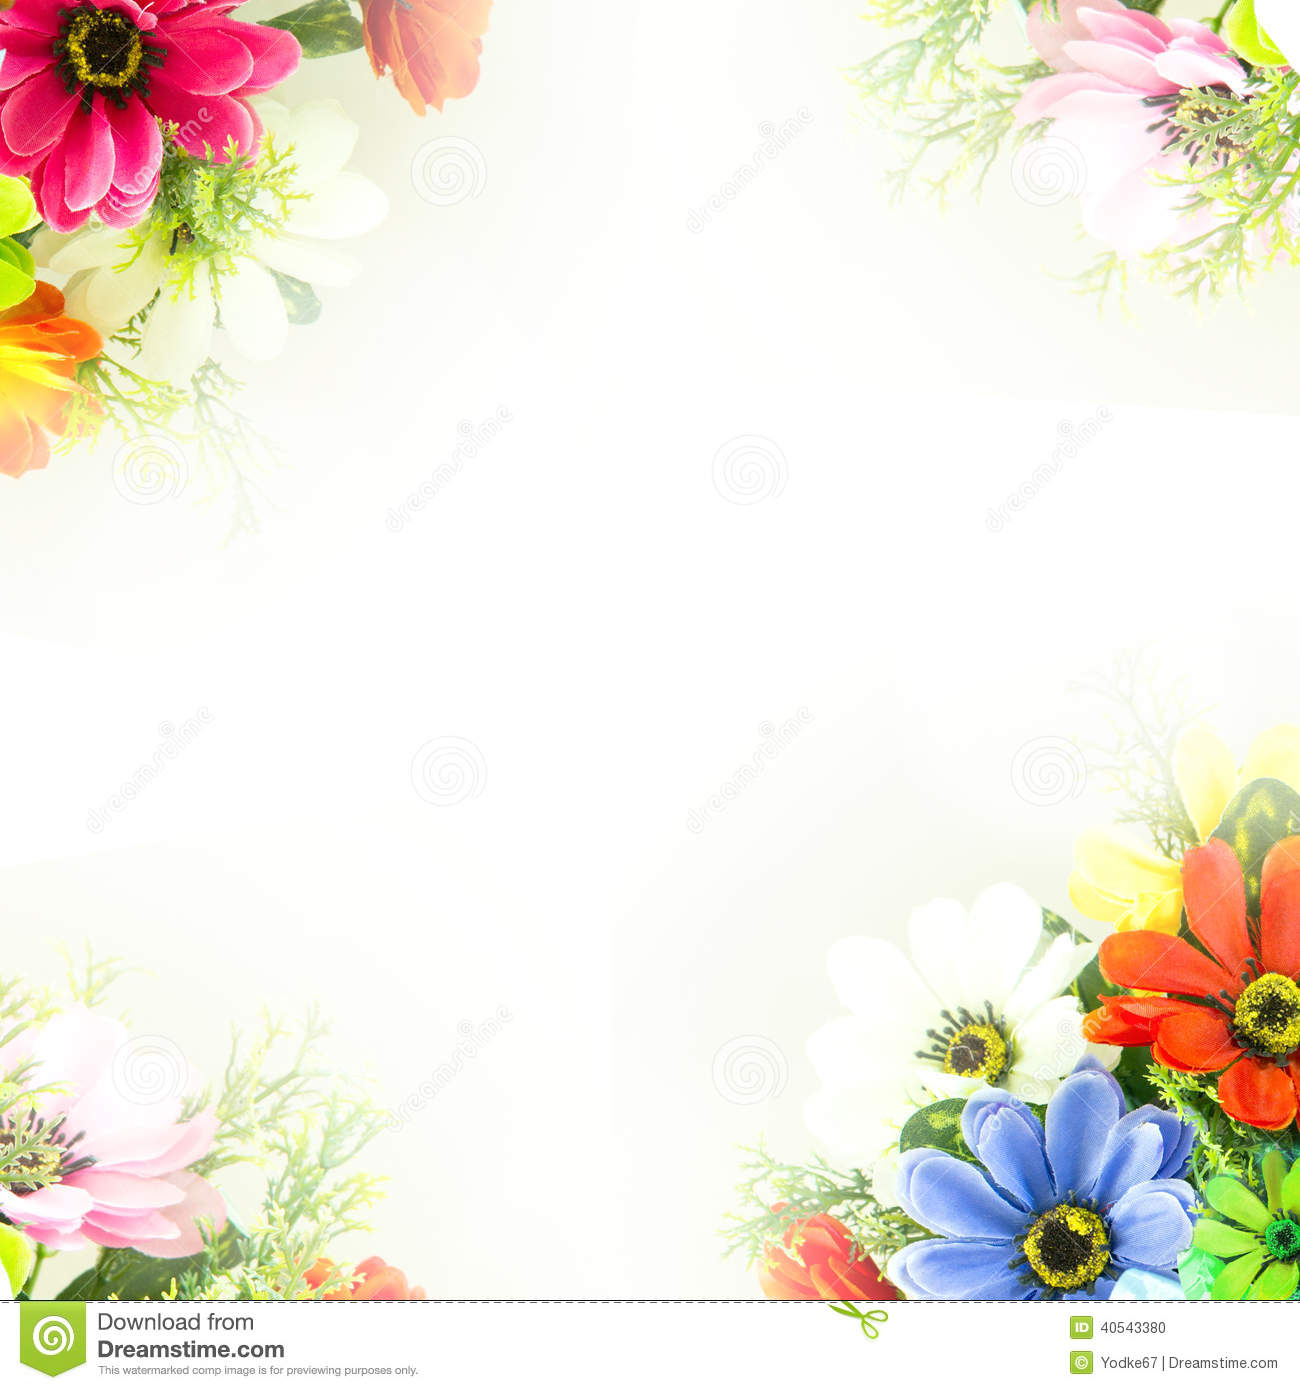 Cute Wallpapers Gold White Flower Background Fake Flowers Stock Photo Image 40543380